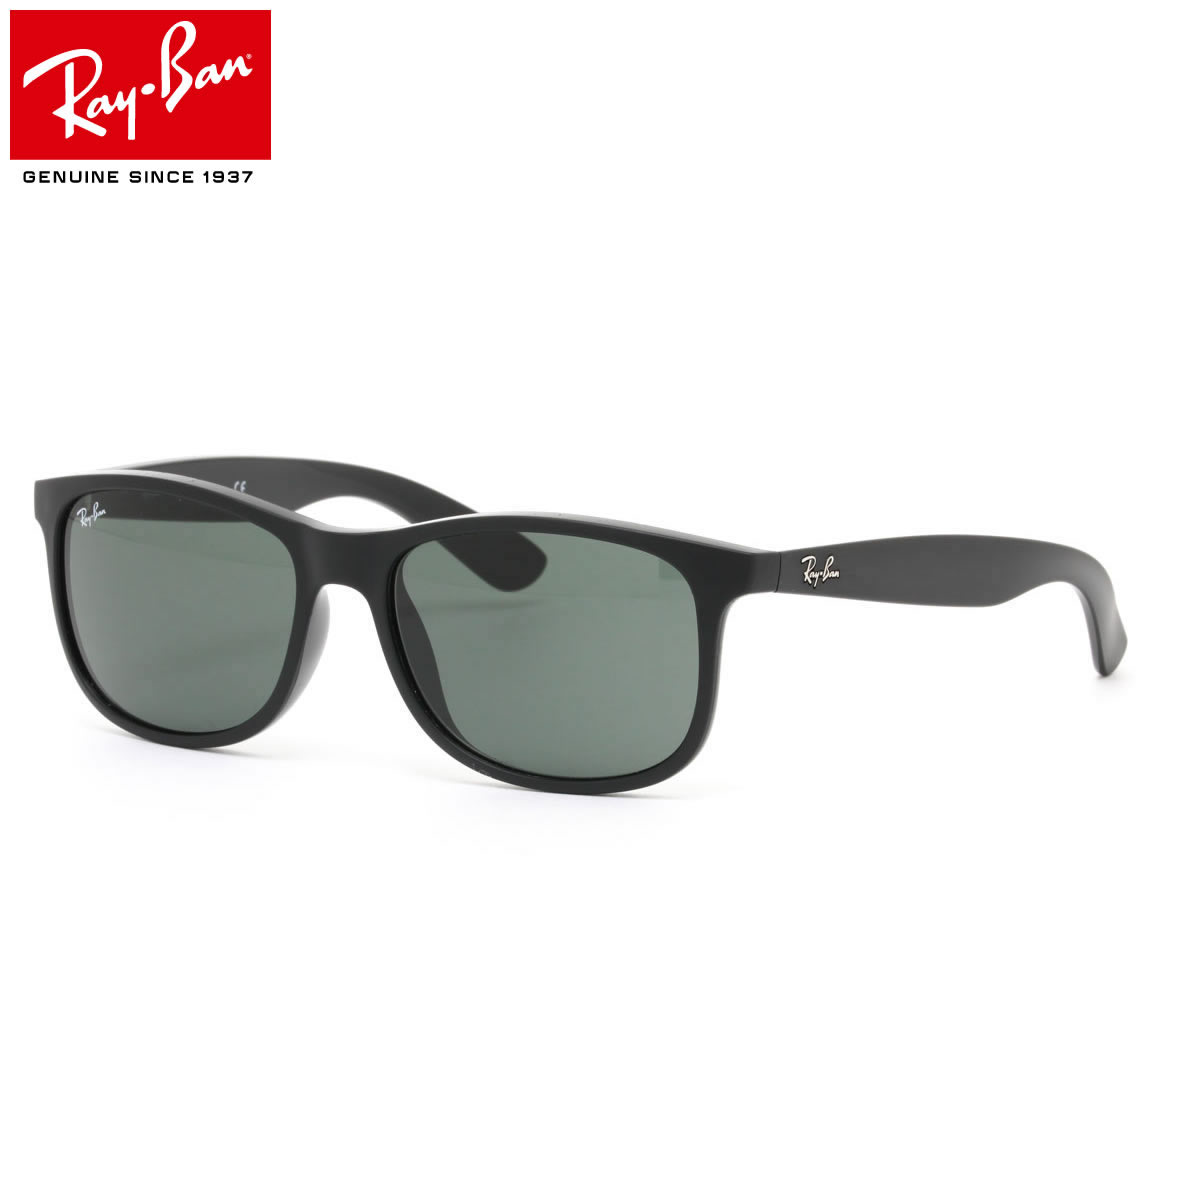 34330824dc Optical Shop Thats  Ray-Ban Sunglasses RB4202F 606971 57size ANDY ...